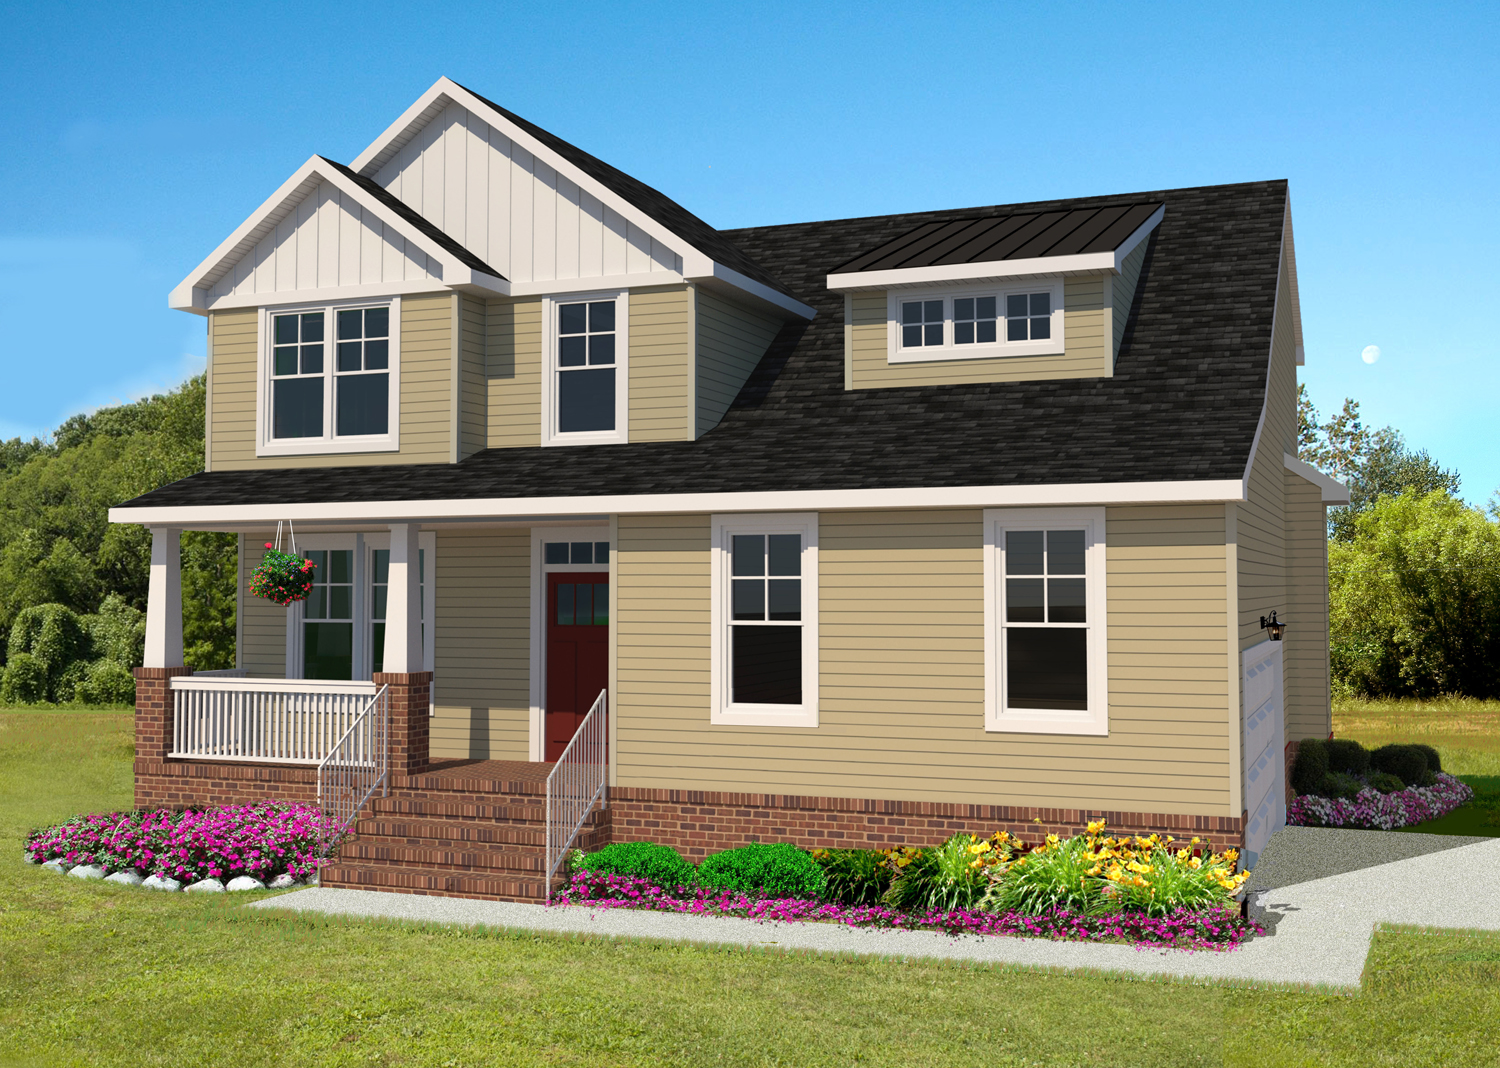 The Holland by AB Homes with dark tan siding and white trim